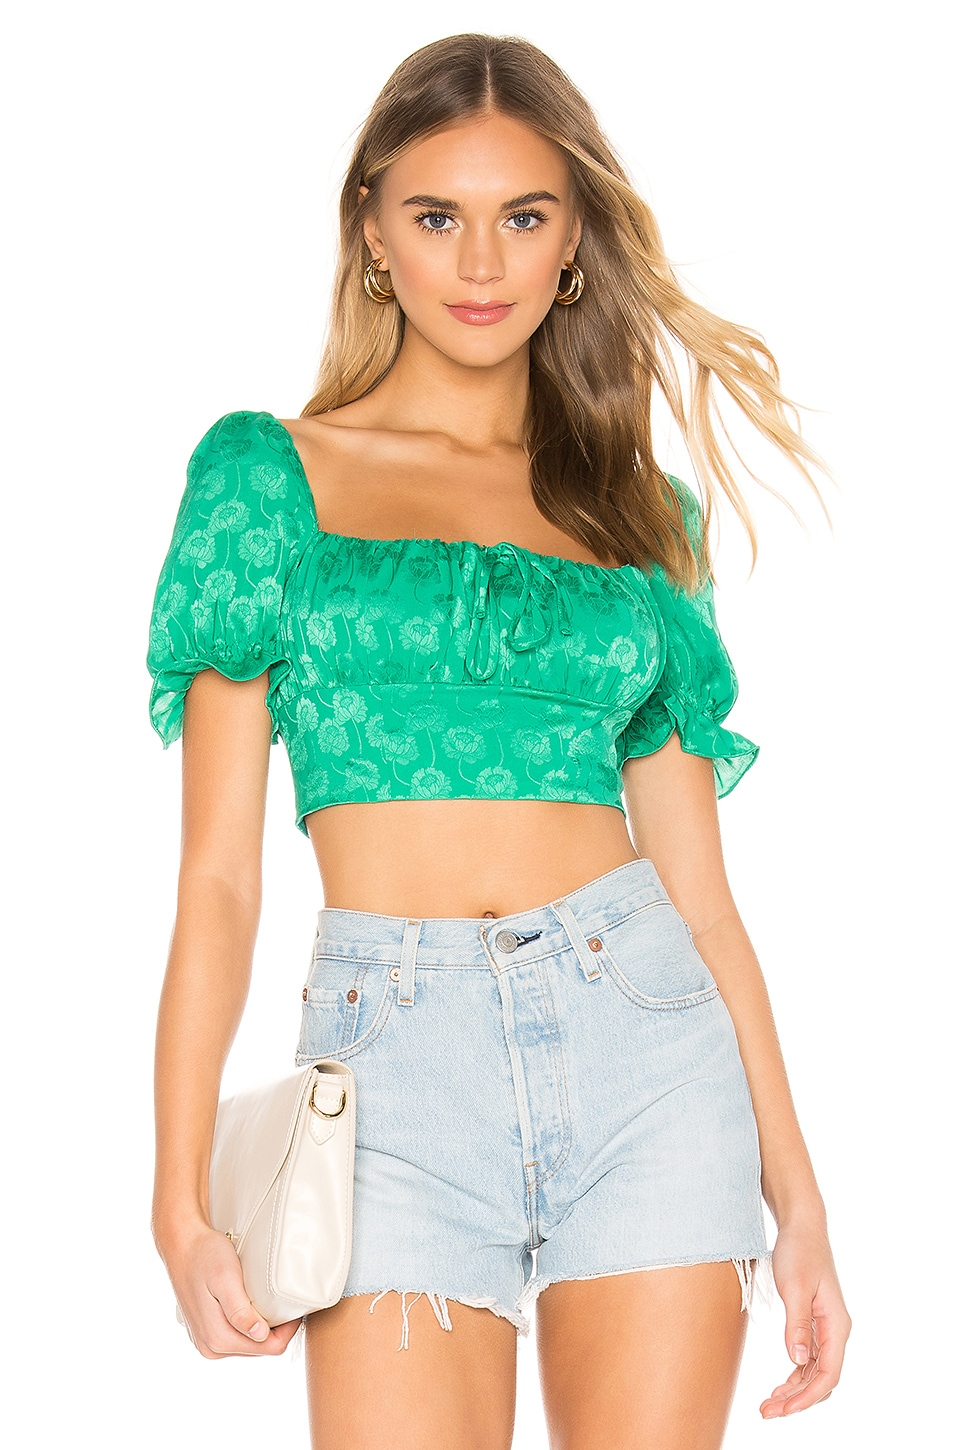 Privacy Please Rosita Top in Kelly Green